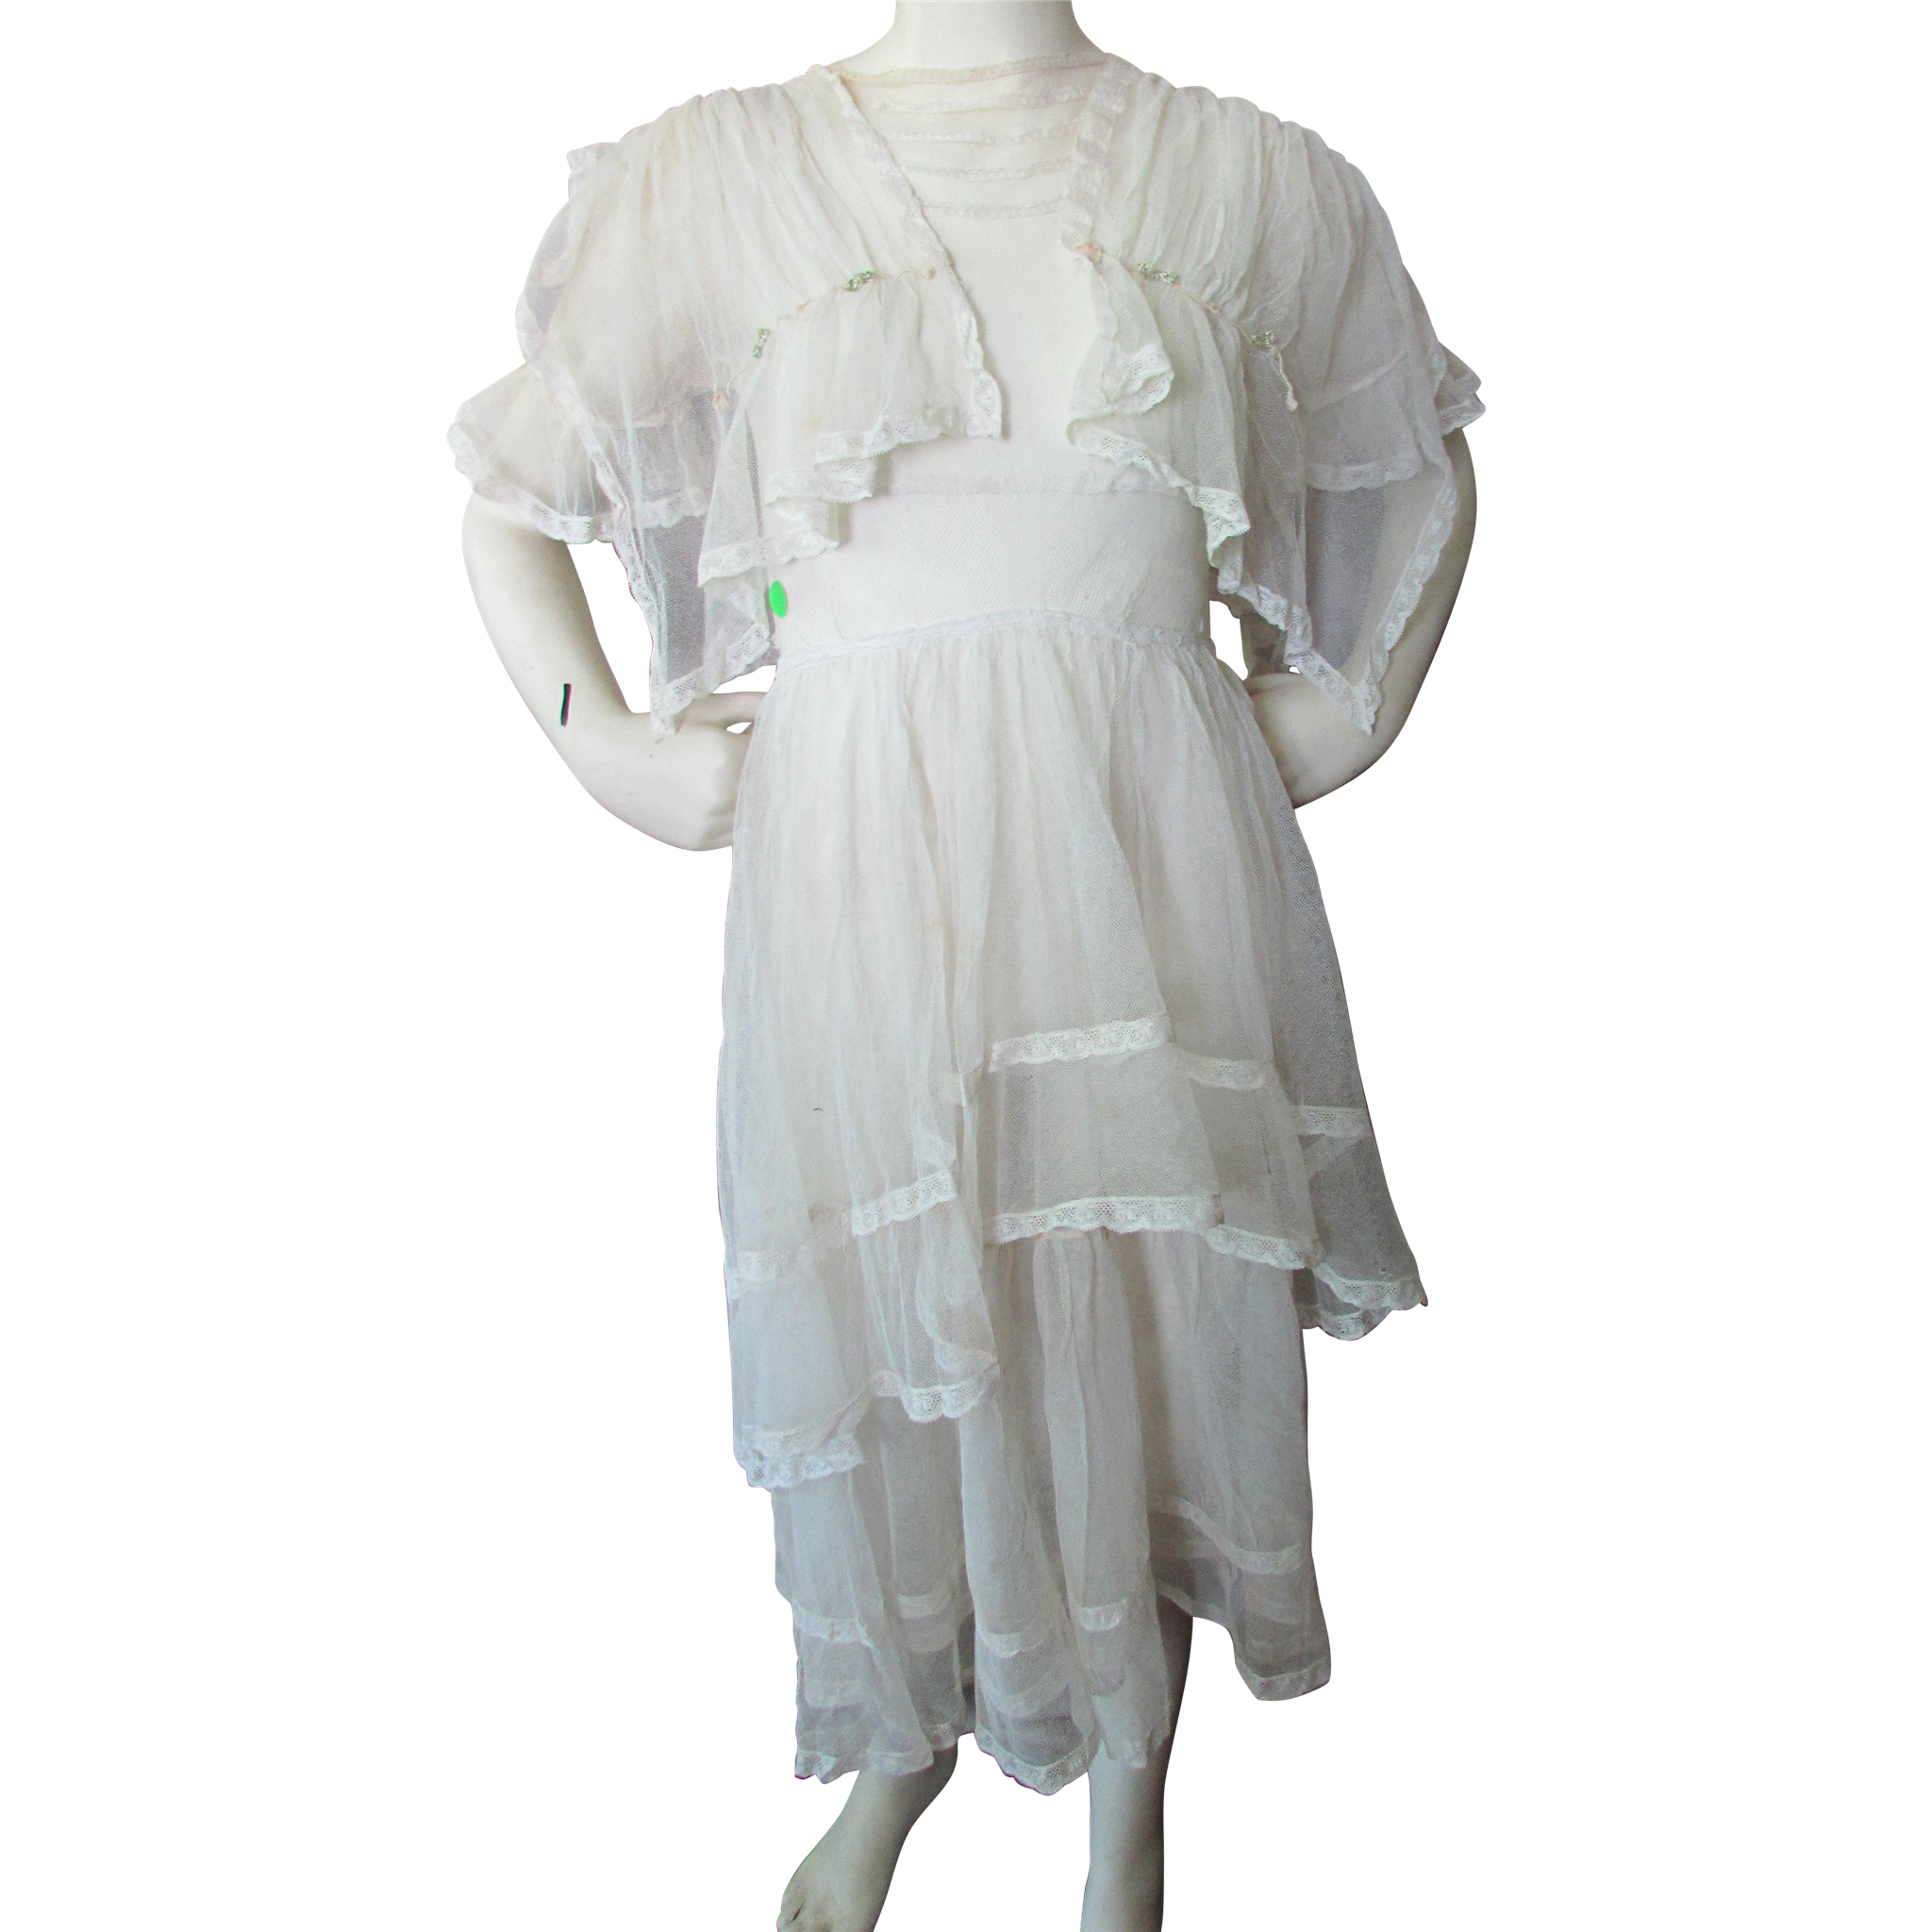 Delicate 1920's Net and Lace Dress for Summer Graduations and Weddings Extra Small